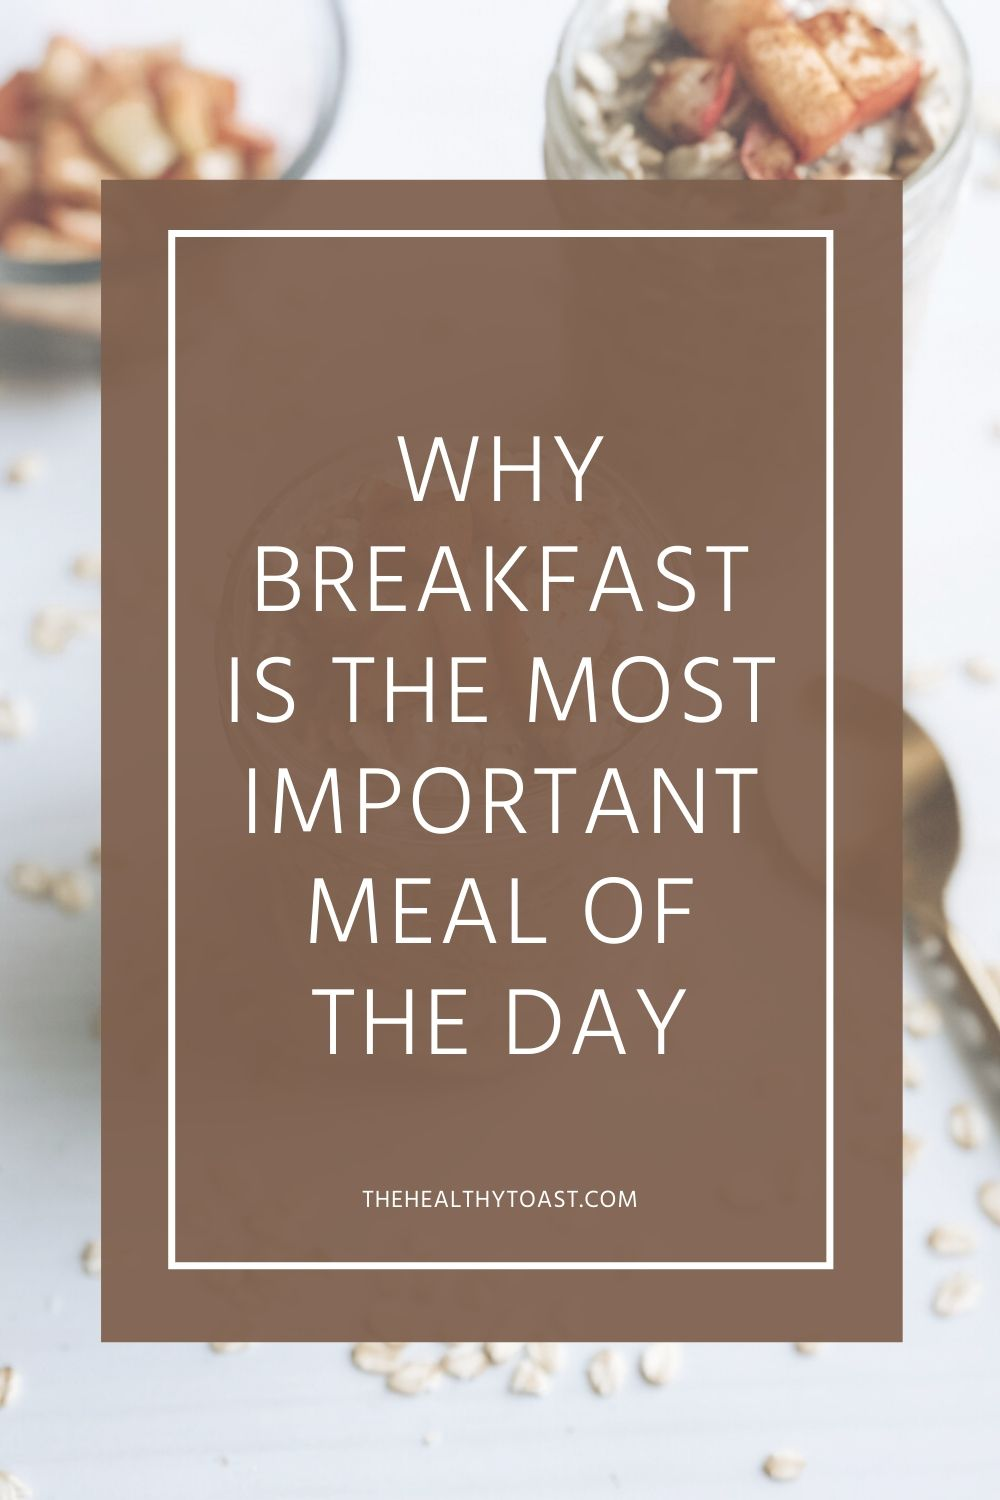 Why Breakfast Really is the Most Important Meal of the Day